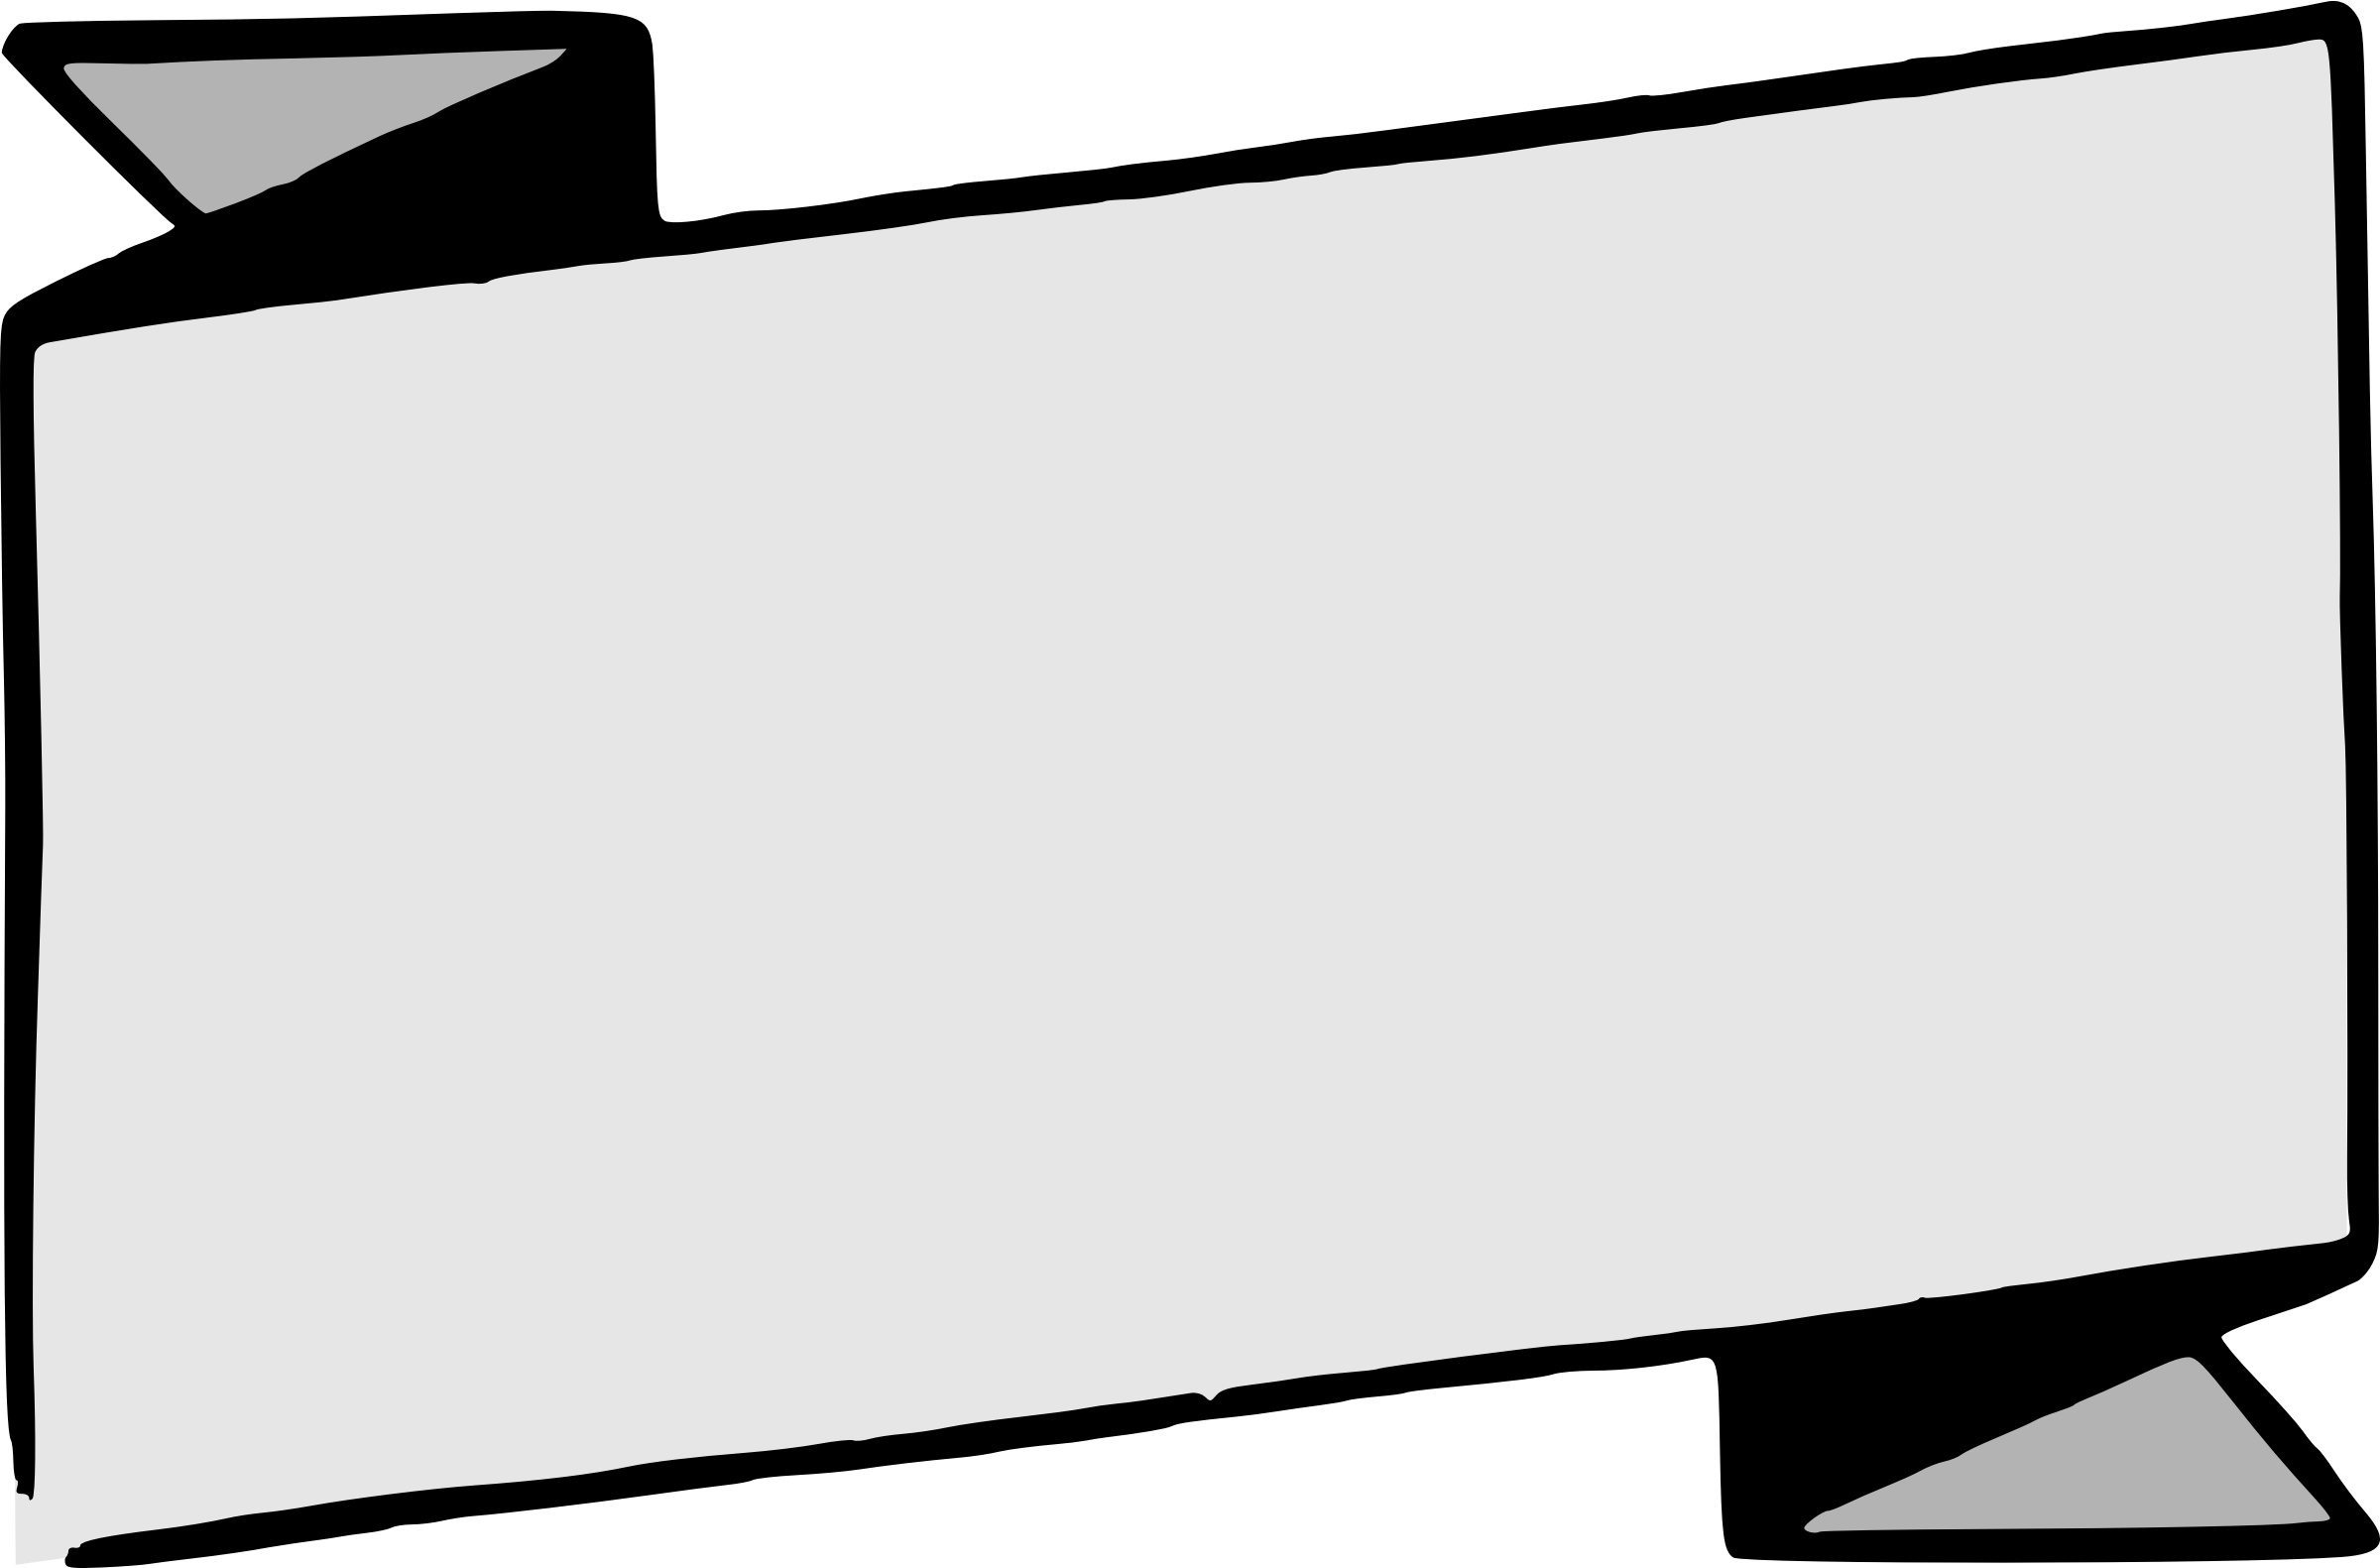 White banner png. Transparent image arts